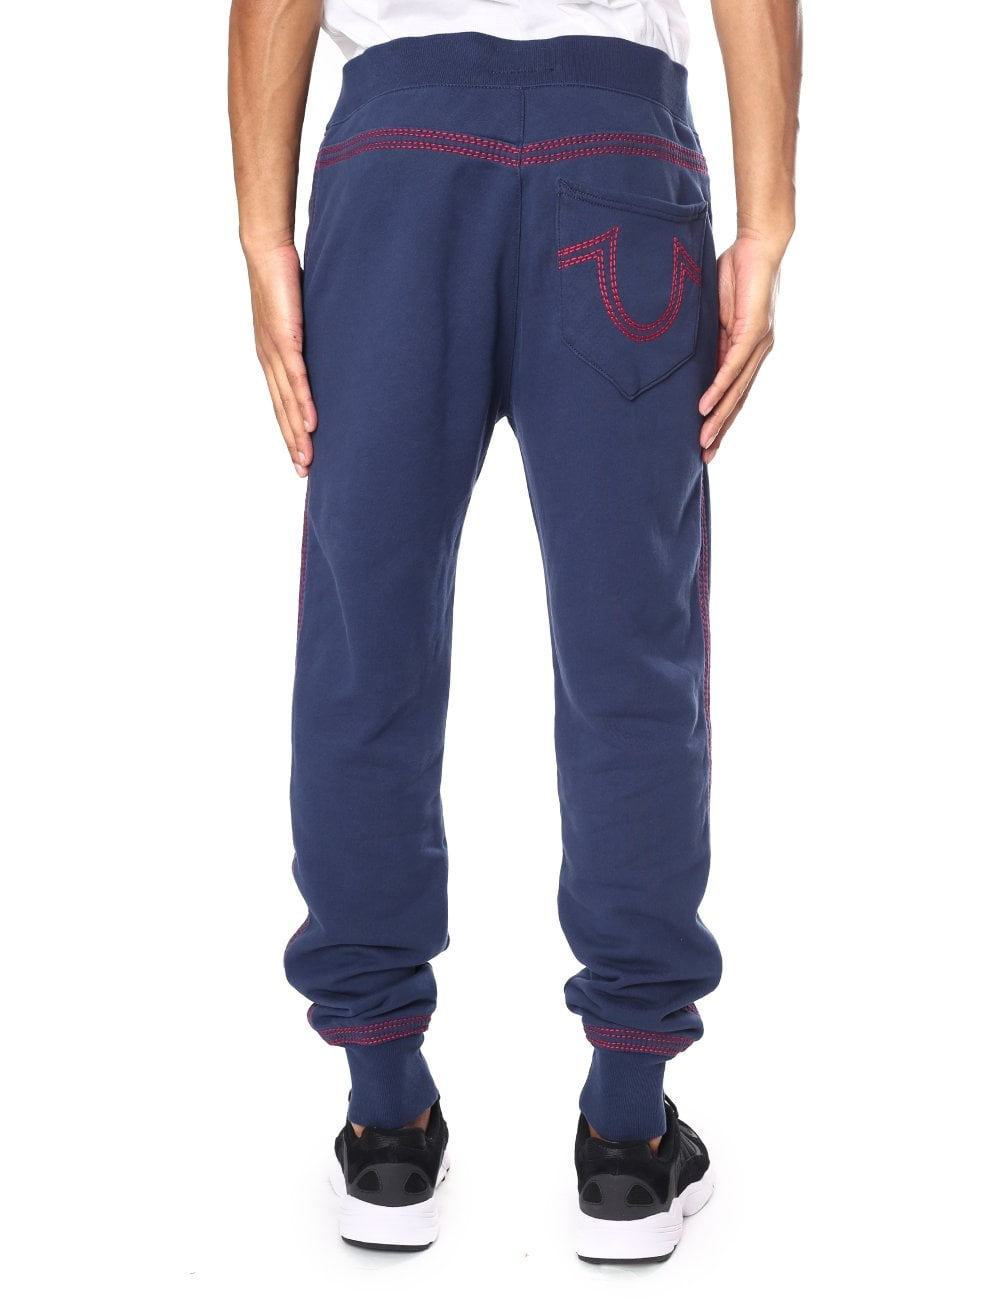 813da9d9234 True Religion Men's QT Core Sweatpants